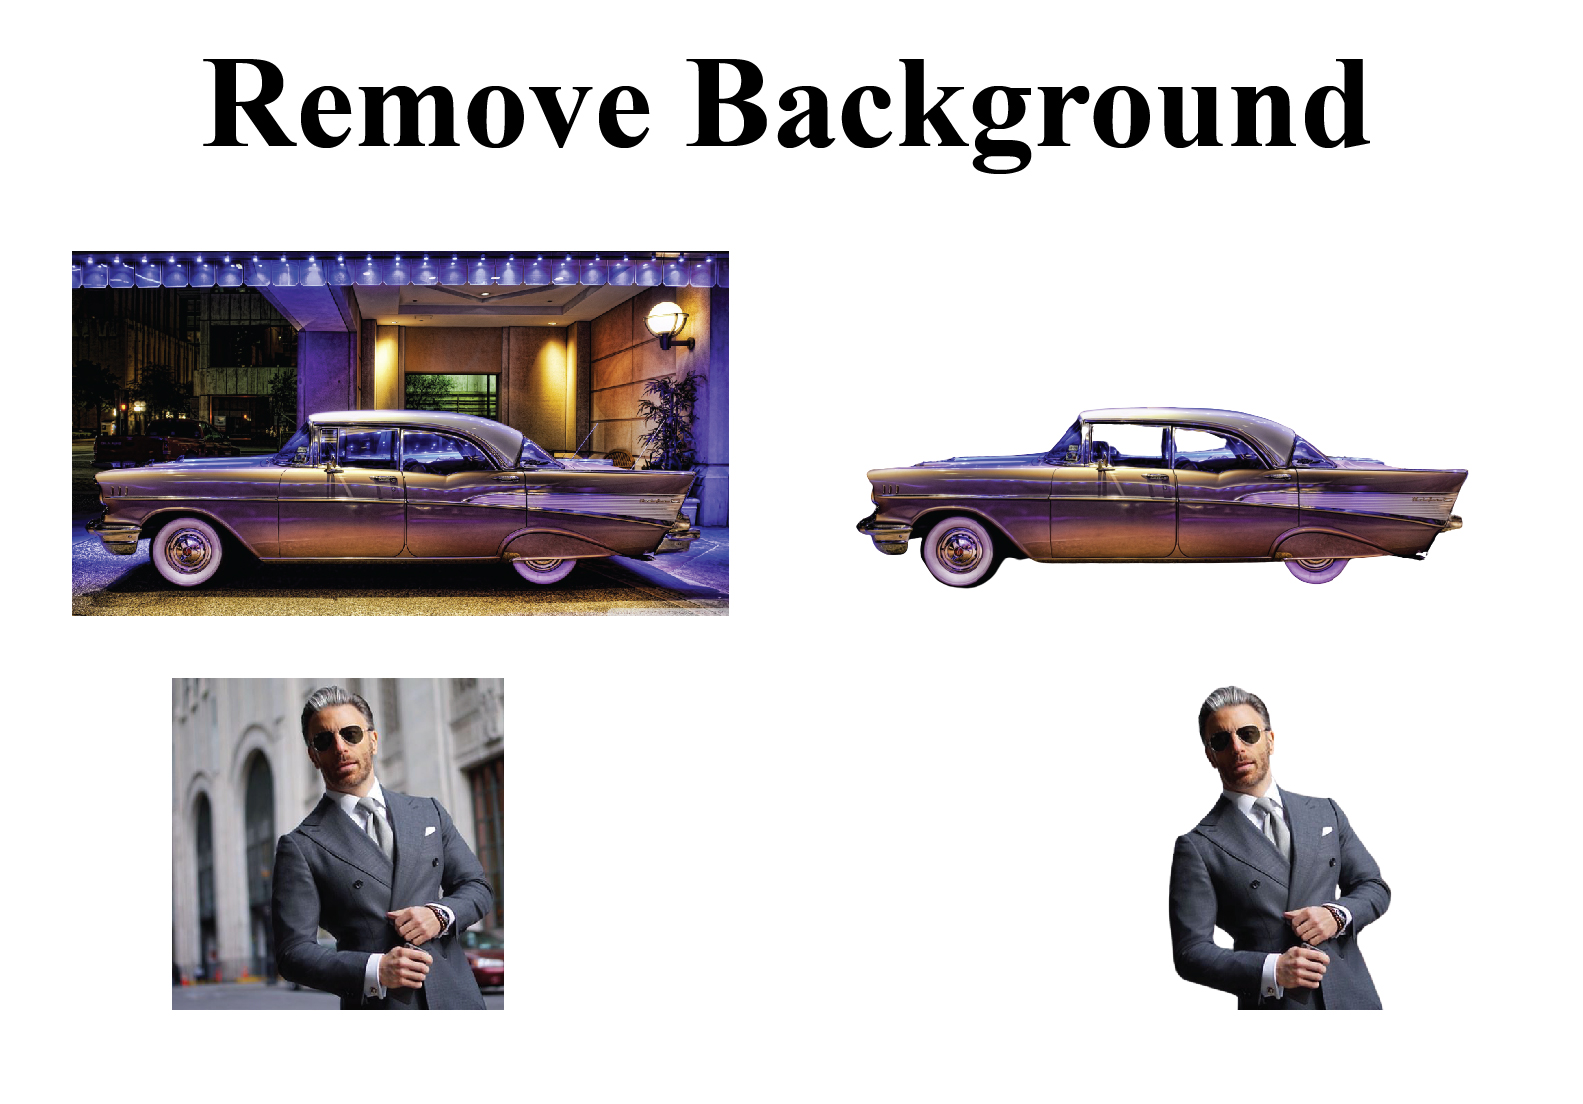 I will remove image background within 6 hours